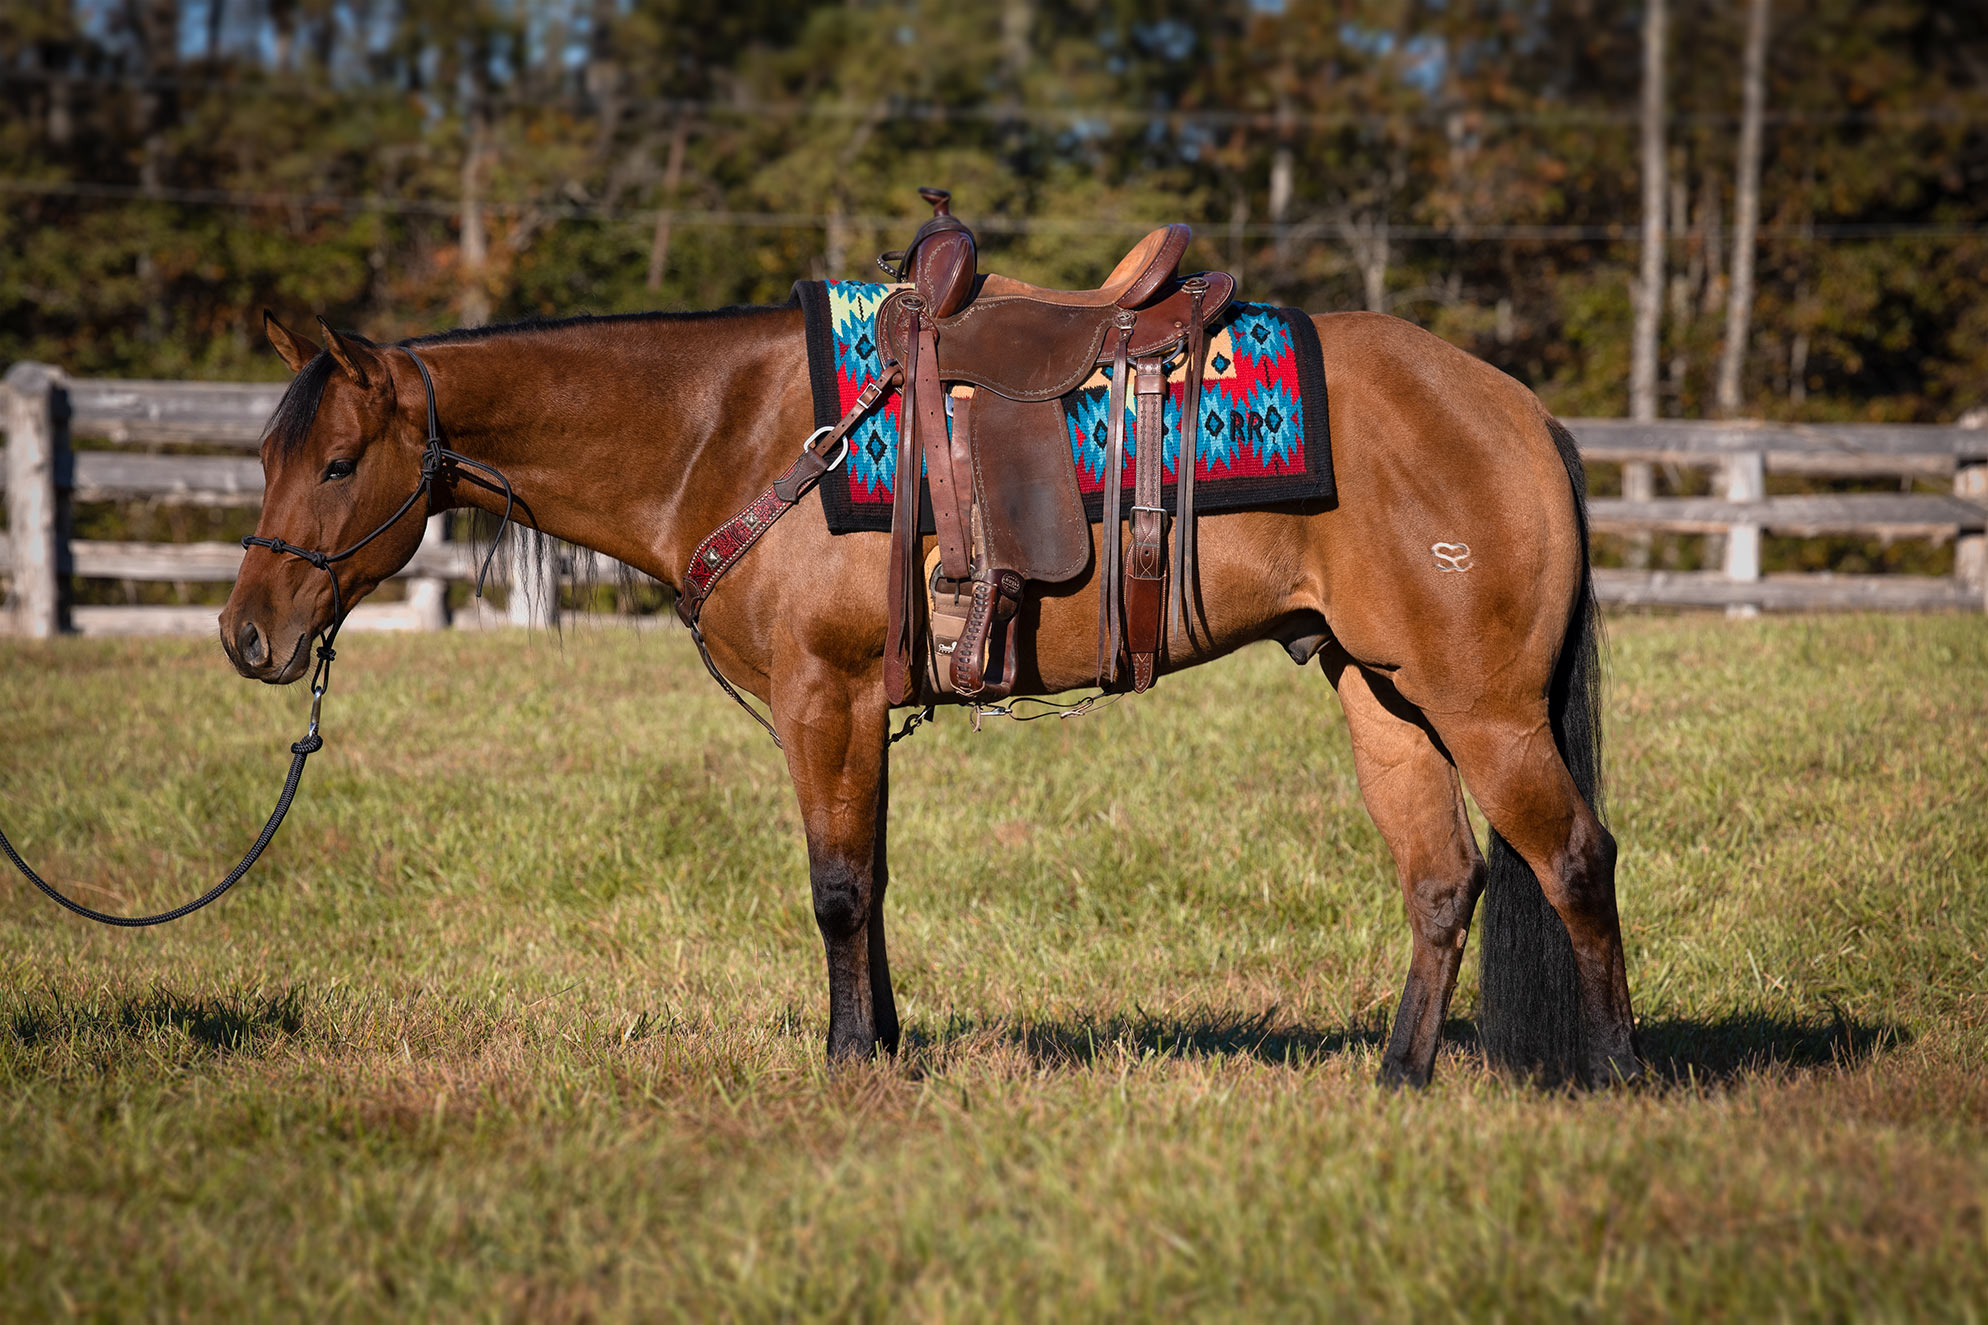 008-Ranger-Luxury-Trail-Horse-For-Sale